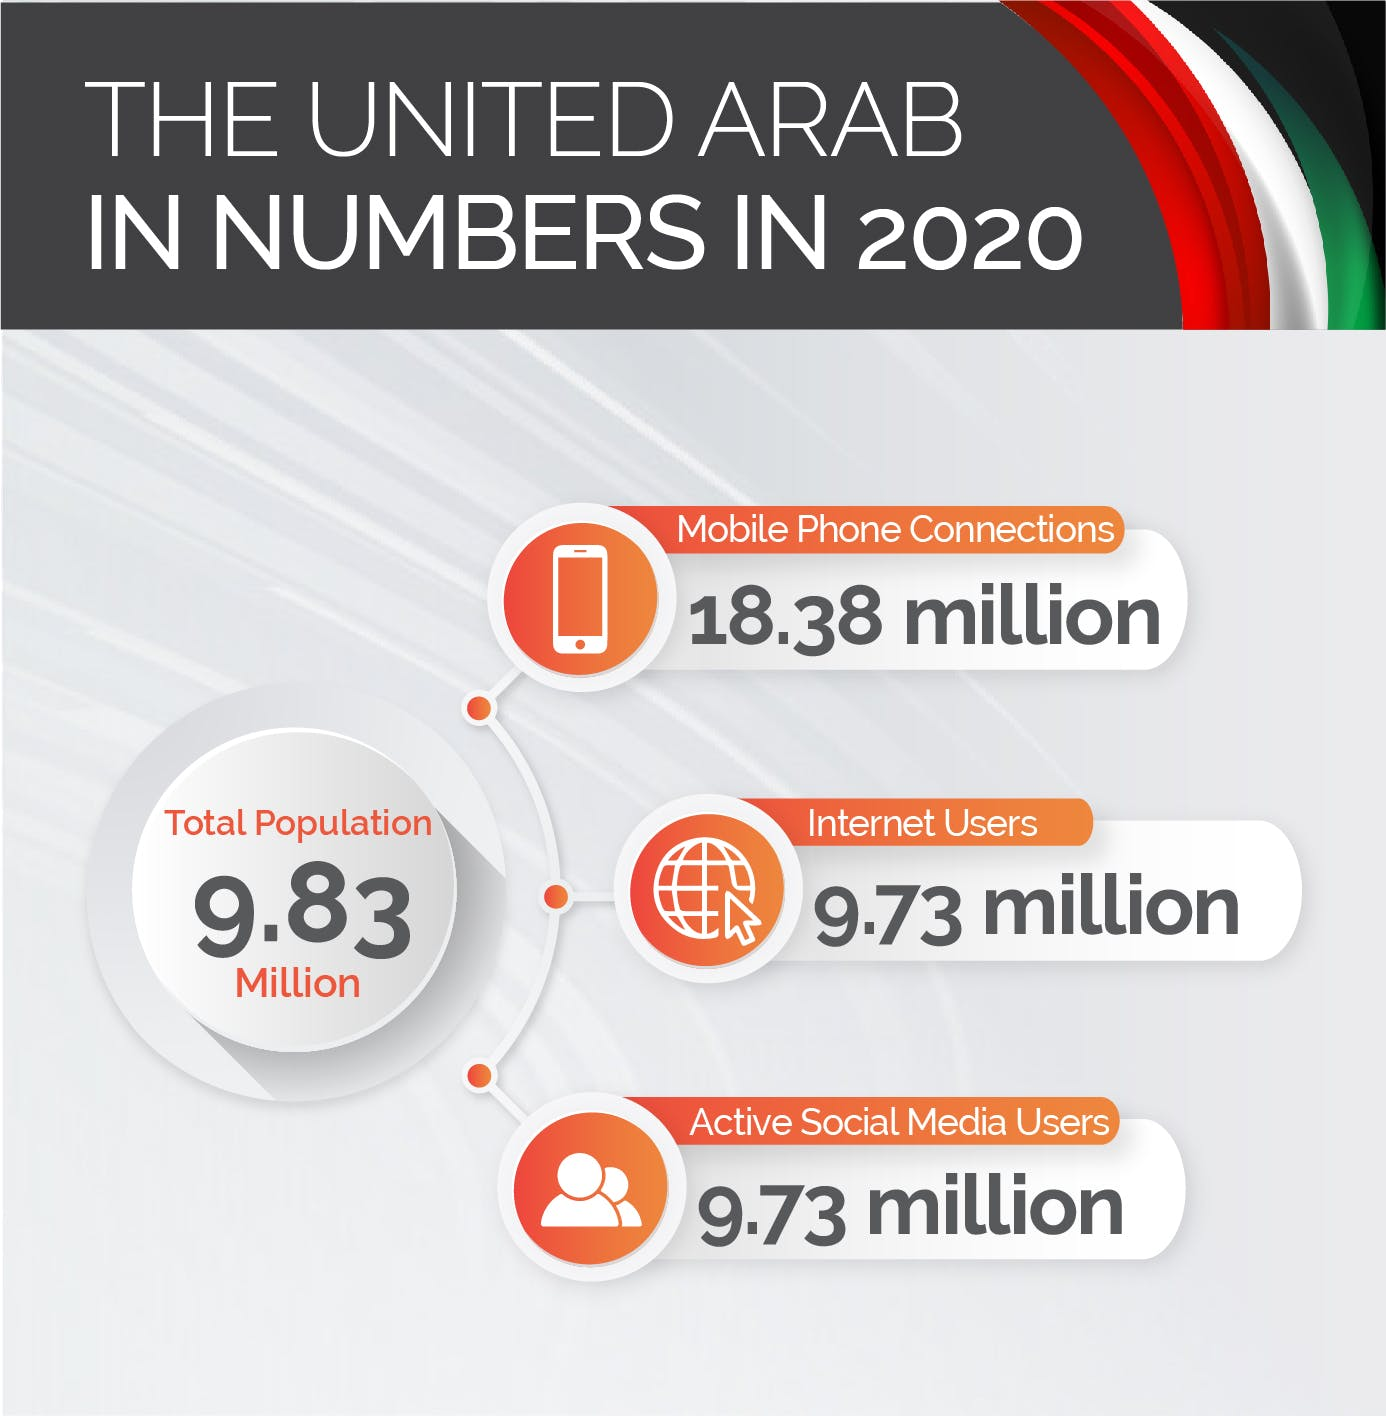 UAE stats for 2020